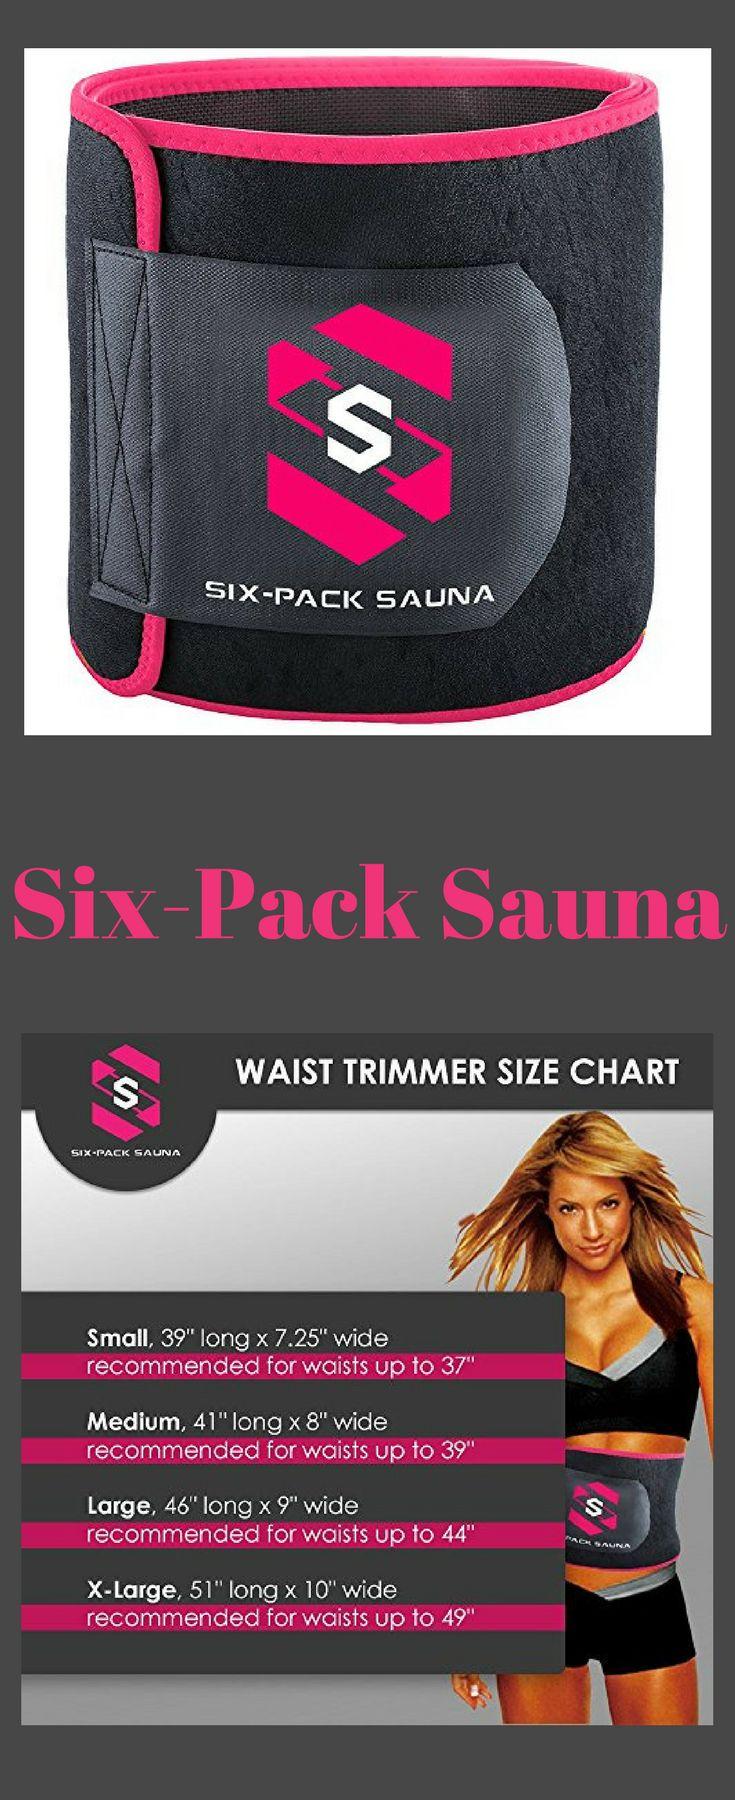 Best Neoprene Waist Trimmer Ab Belt for Men and Women for Weight Loss Workout with Adjustable Velcro for a Slimming Comfortable Fit #weightloss #fatloss #slimming